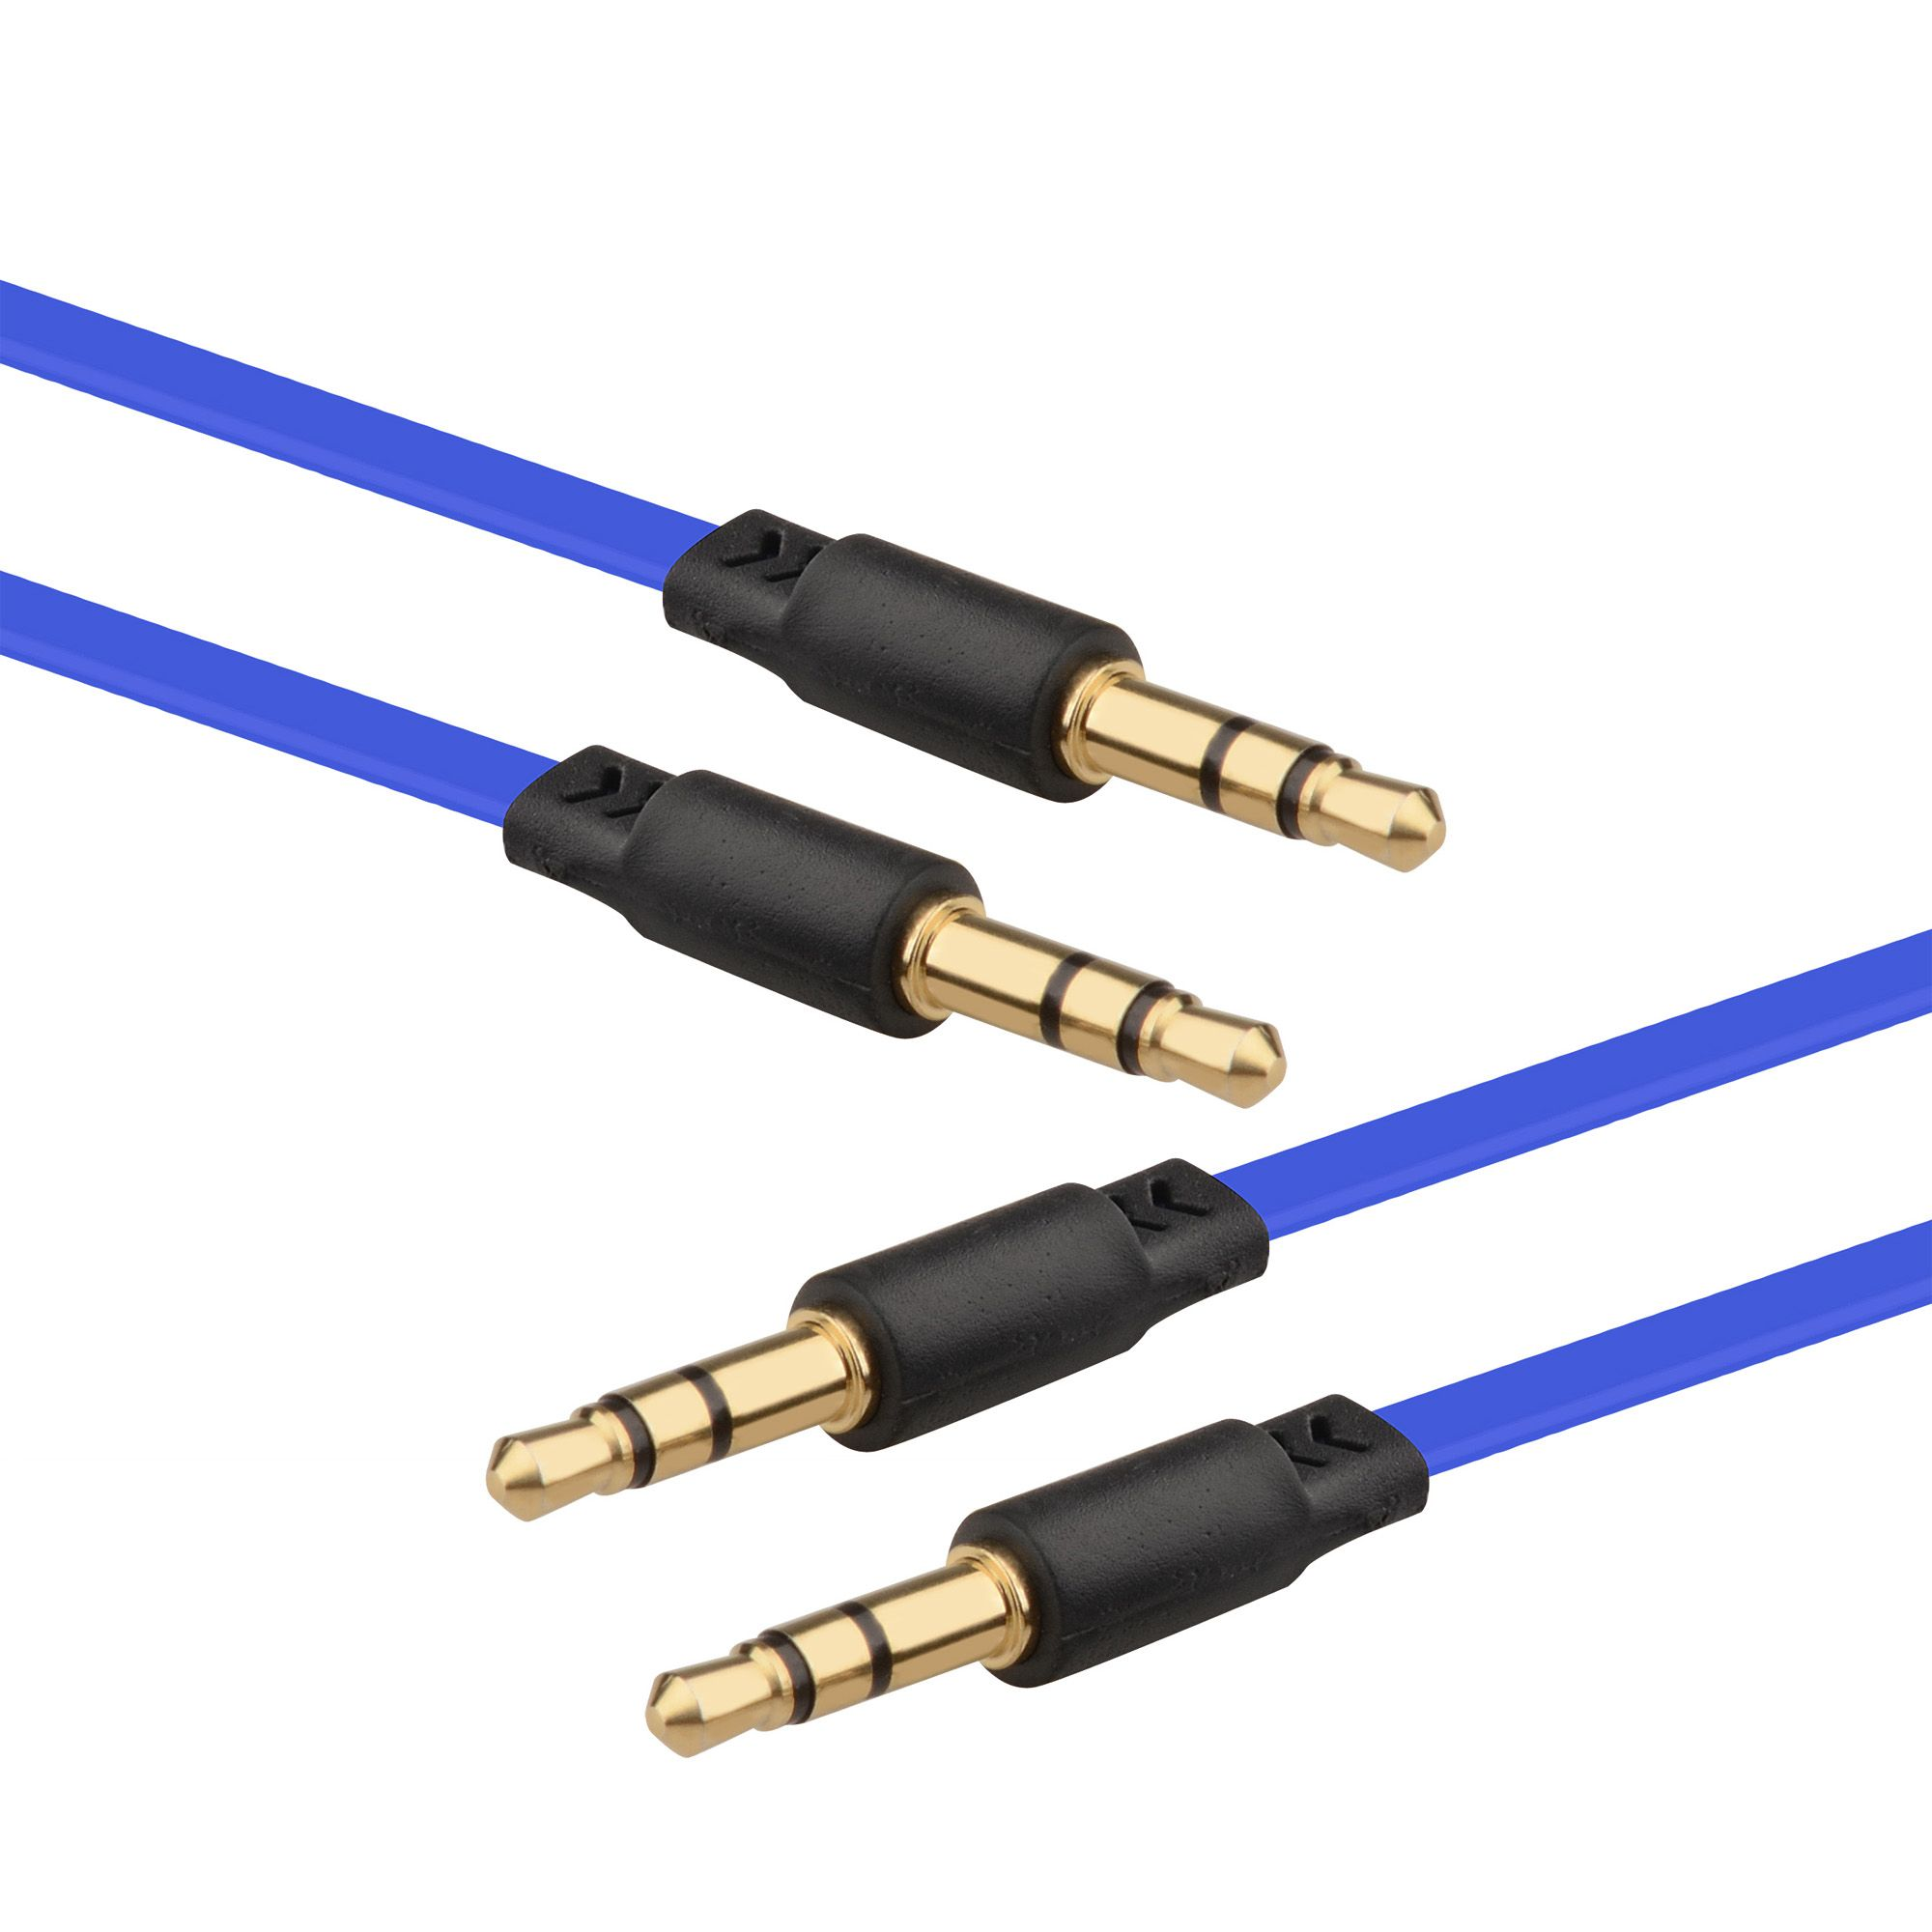 2 Pack Insten 3.5mm Audio Aux Stereo Extension M/M Cable Cord , 3.3FT Dark Blue (for Apple iPhone 6S 6 Plus 5.5 4.7 SE 5S iPod Touch Nano Classic / Samsung Galaxy S9 S9 Plus S9+ S8 S7 S6 J7 J3 J5)